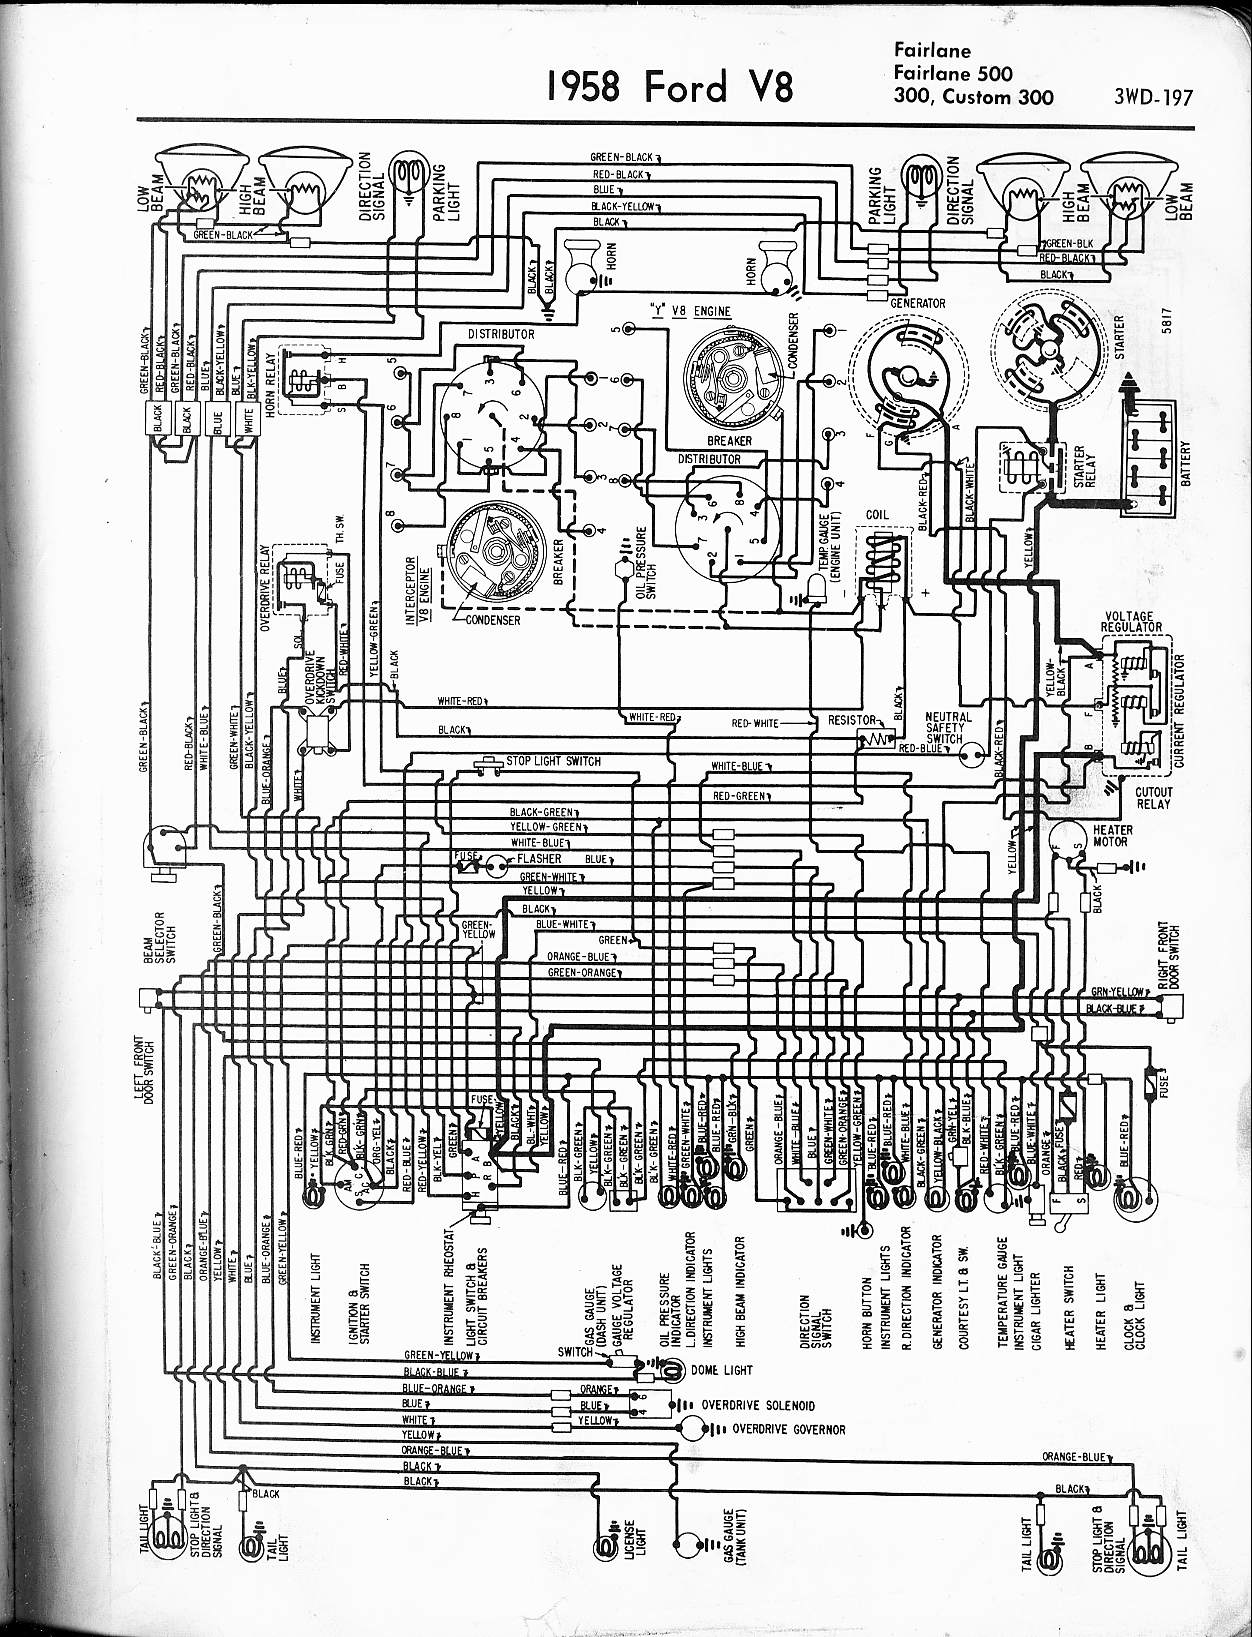 57 65 ford wiring diagrams ford wire harness repair 1958 v8 fairlane, 500,  300